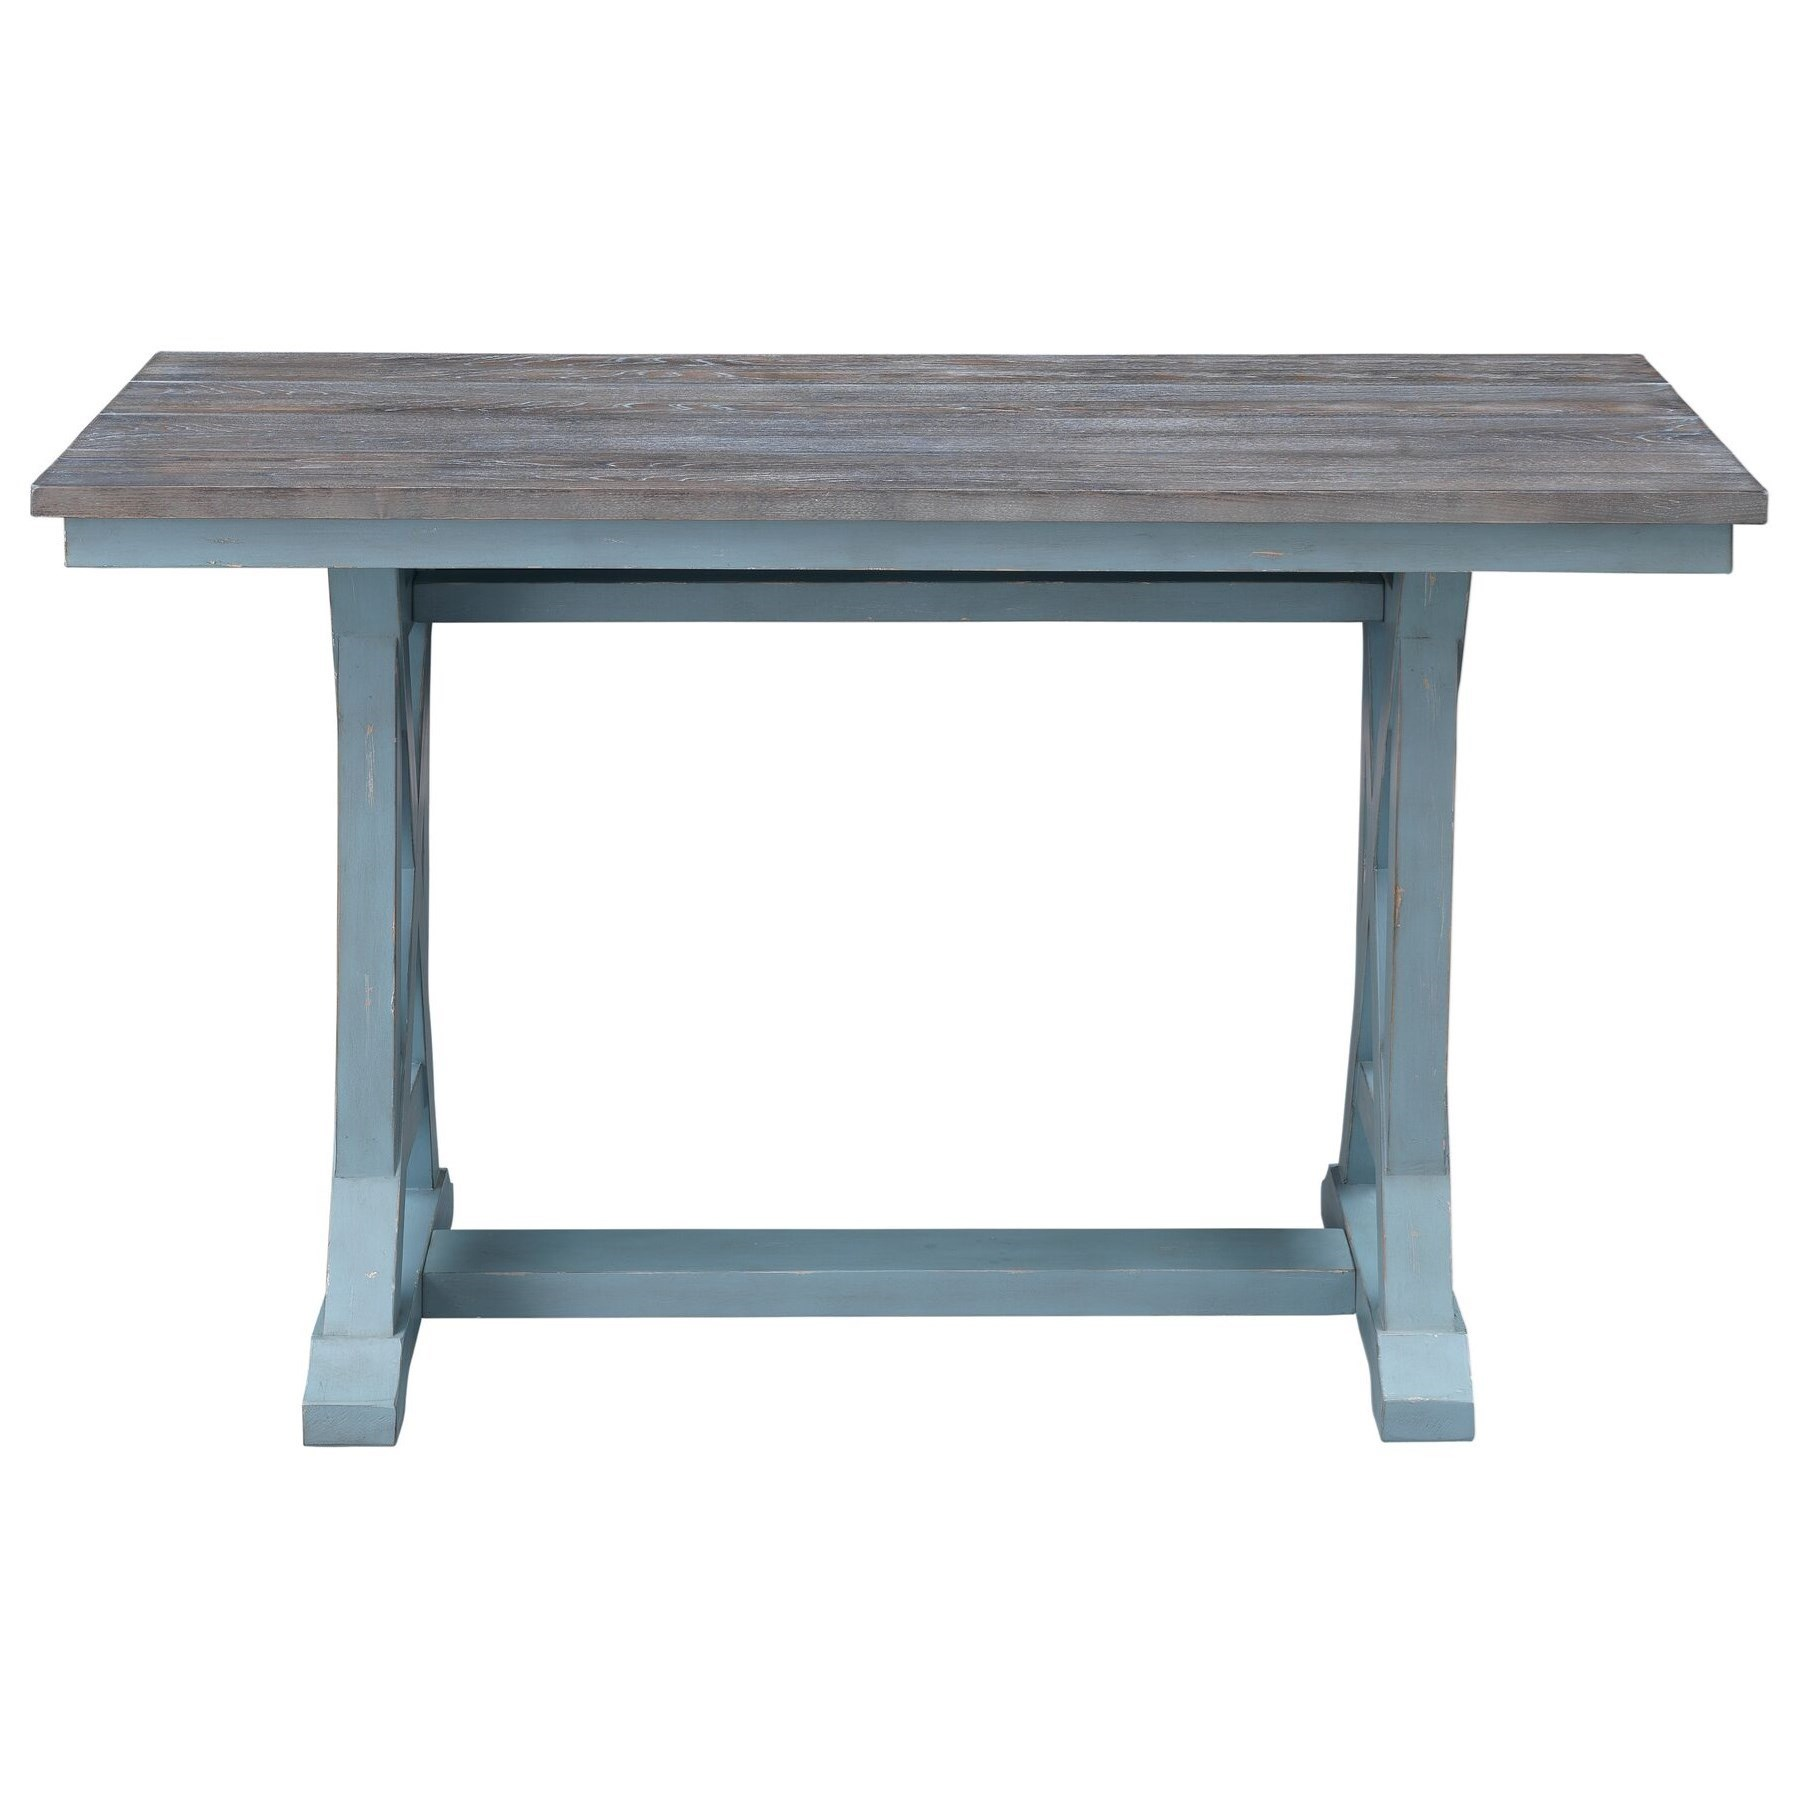 Bar Harbor Counter Height Dining Table by C2C at Walker's Furniture